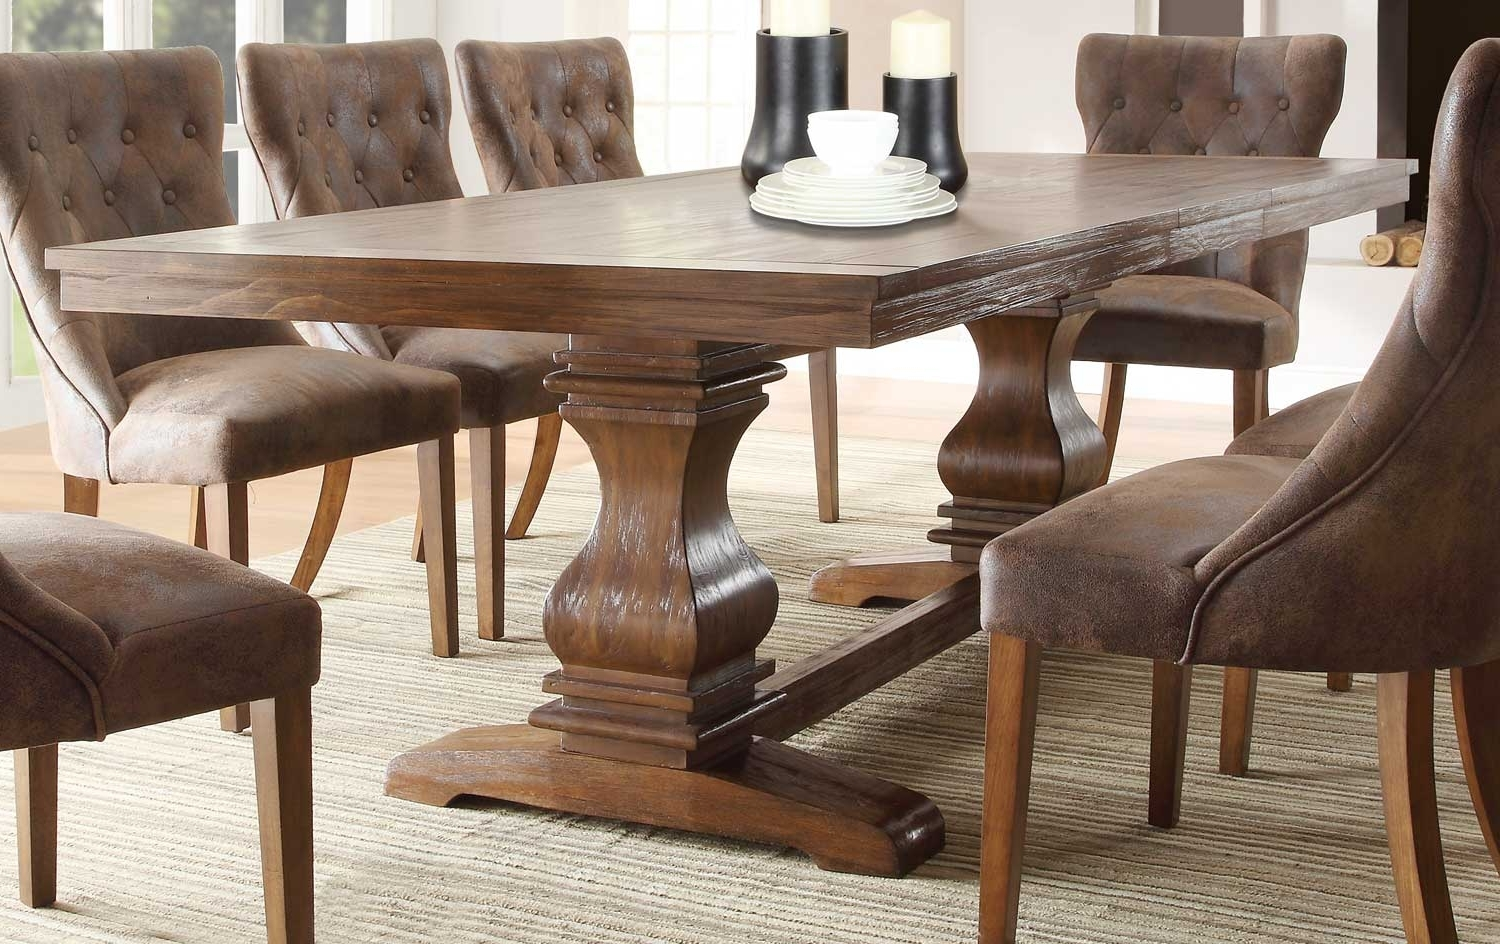 Fashionable Cheap Dining Room Chairs Regarding Homelegance Marie Louise Dining Table – Rustic Oak Brown 2526  (View 10 of 25)